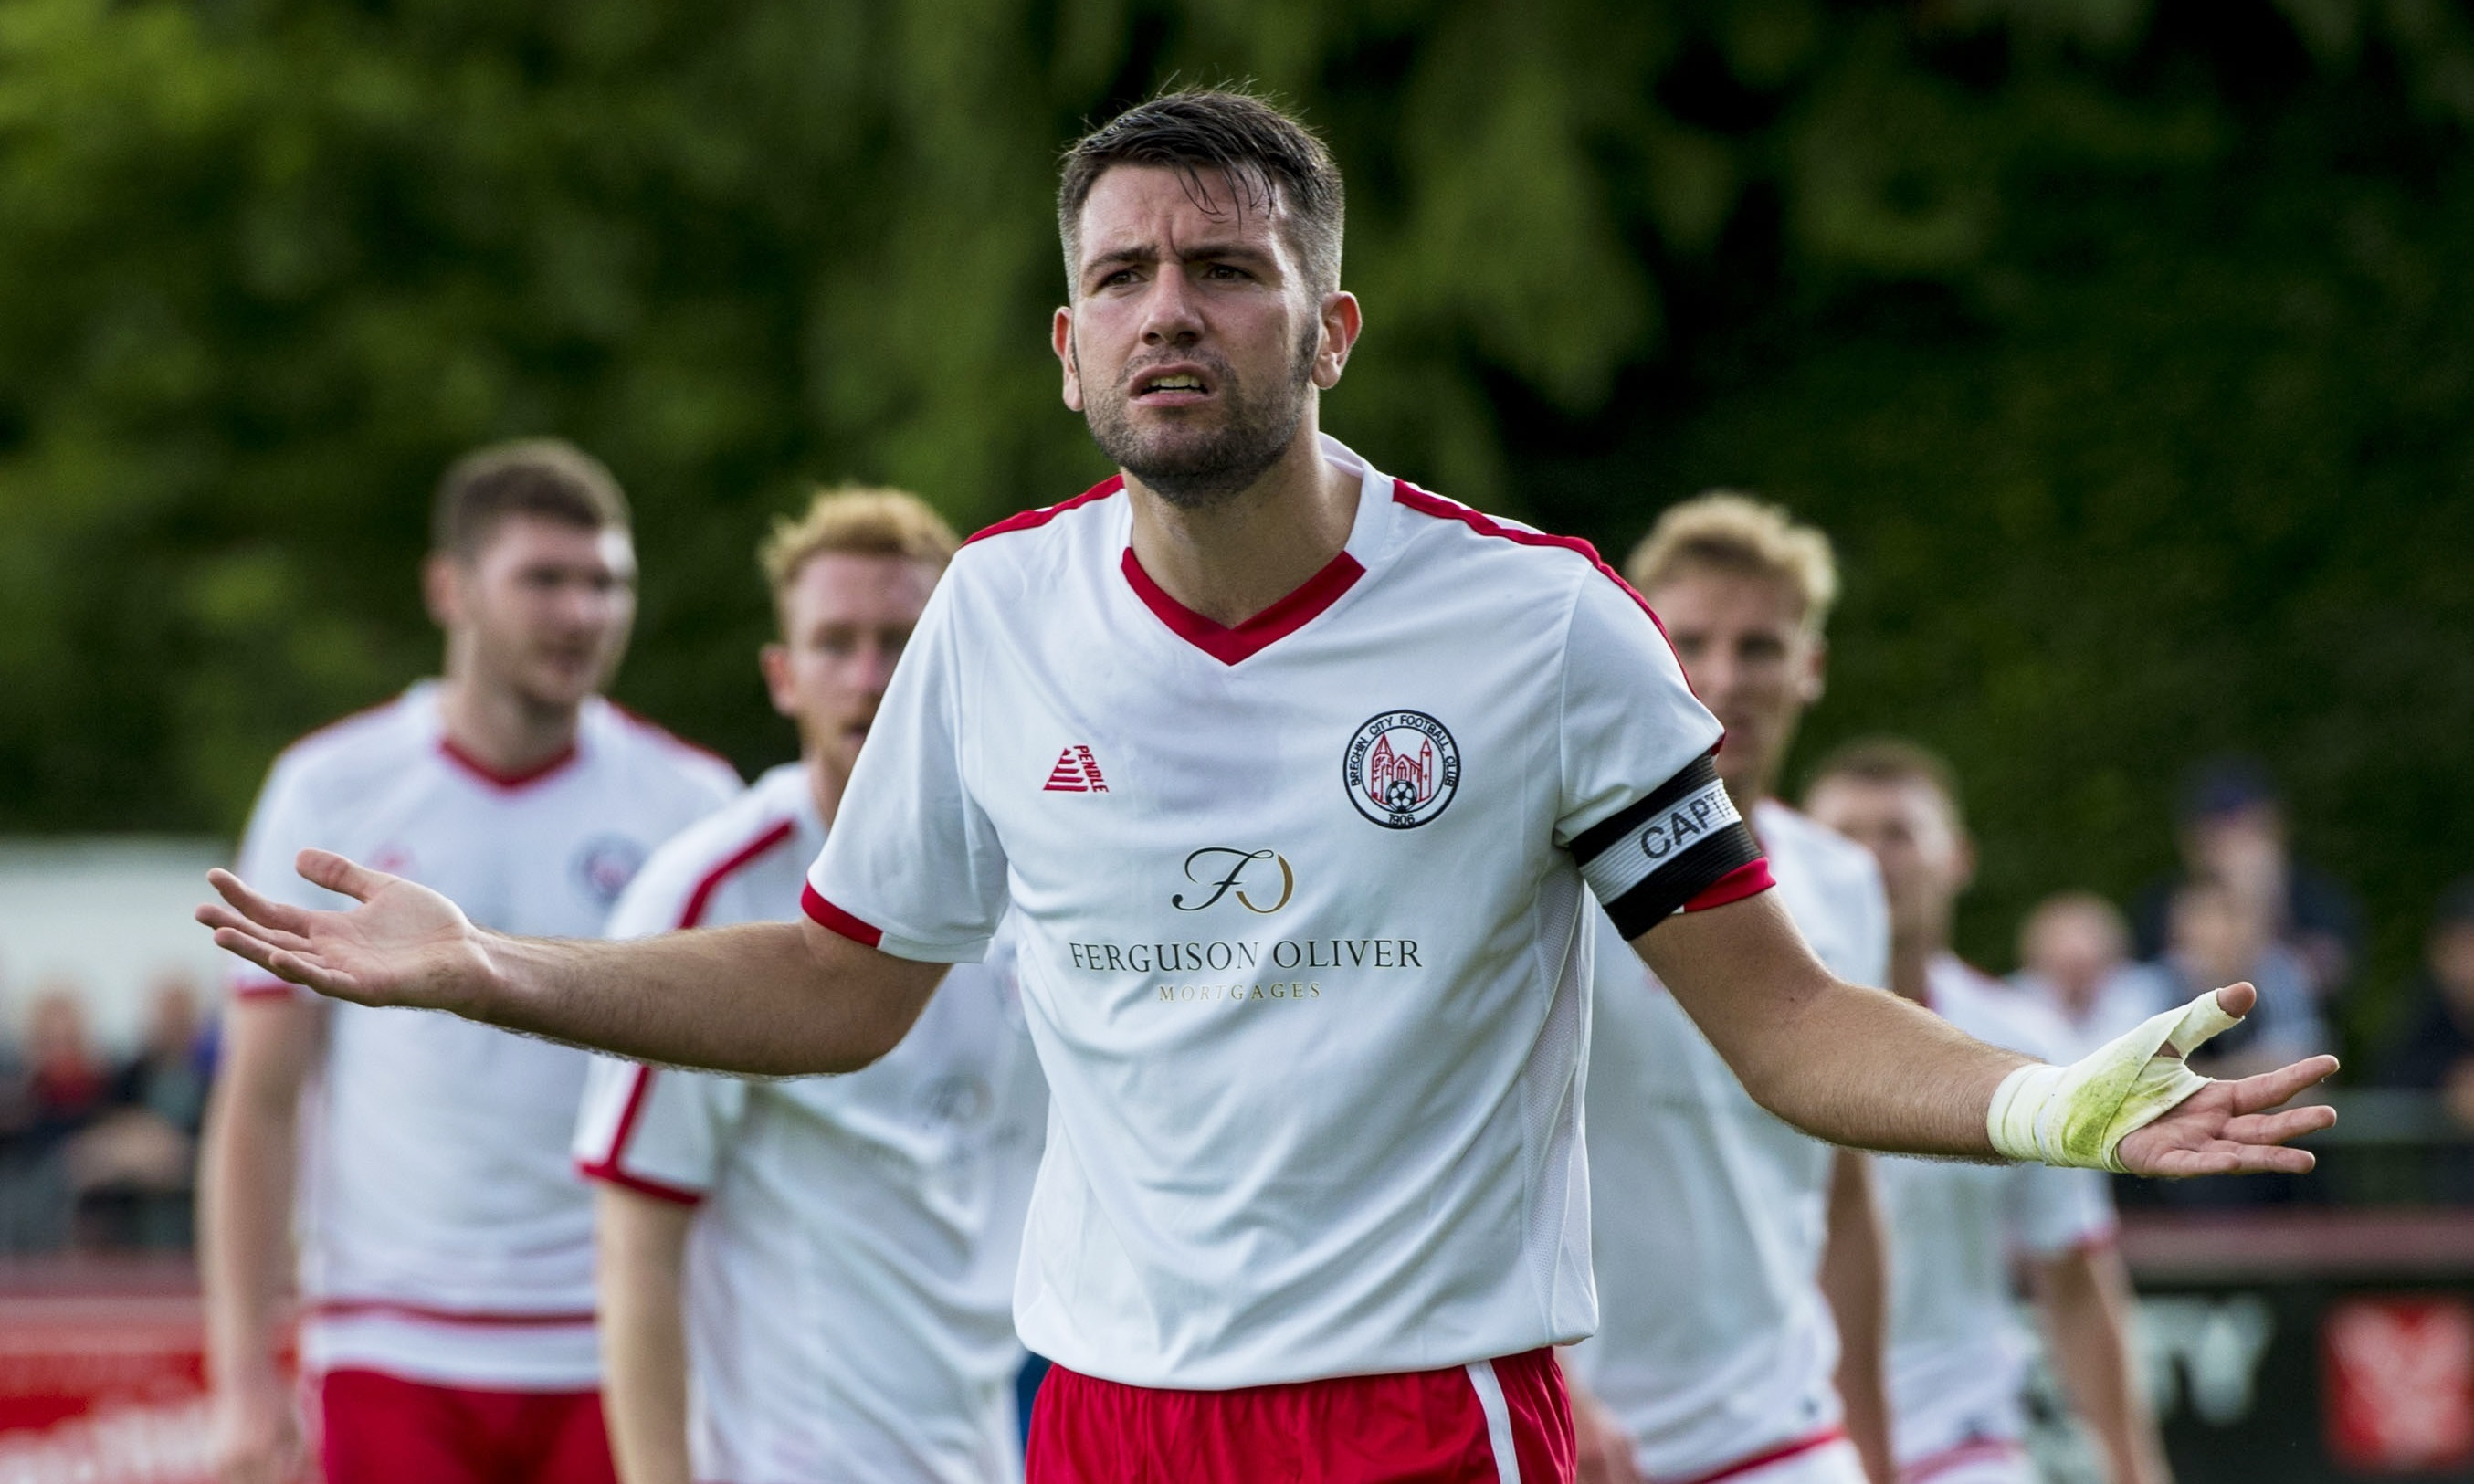 We take a look at Dundee United's opponents Brechin